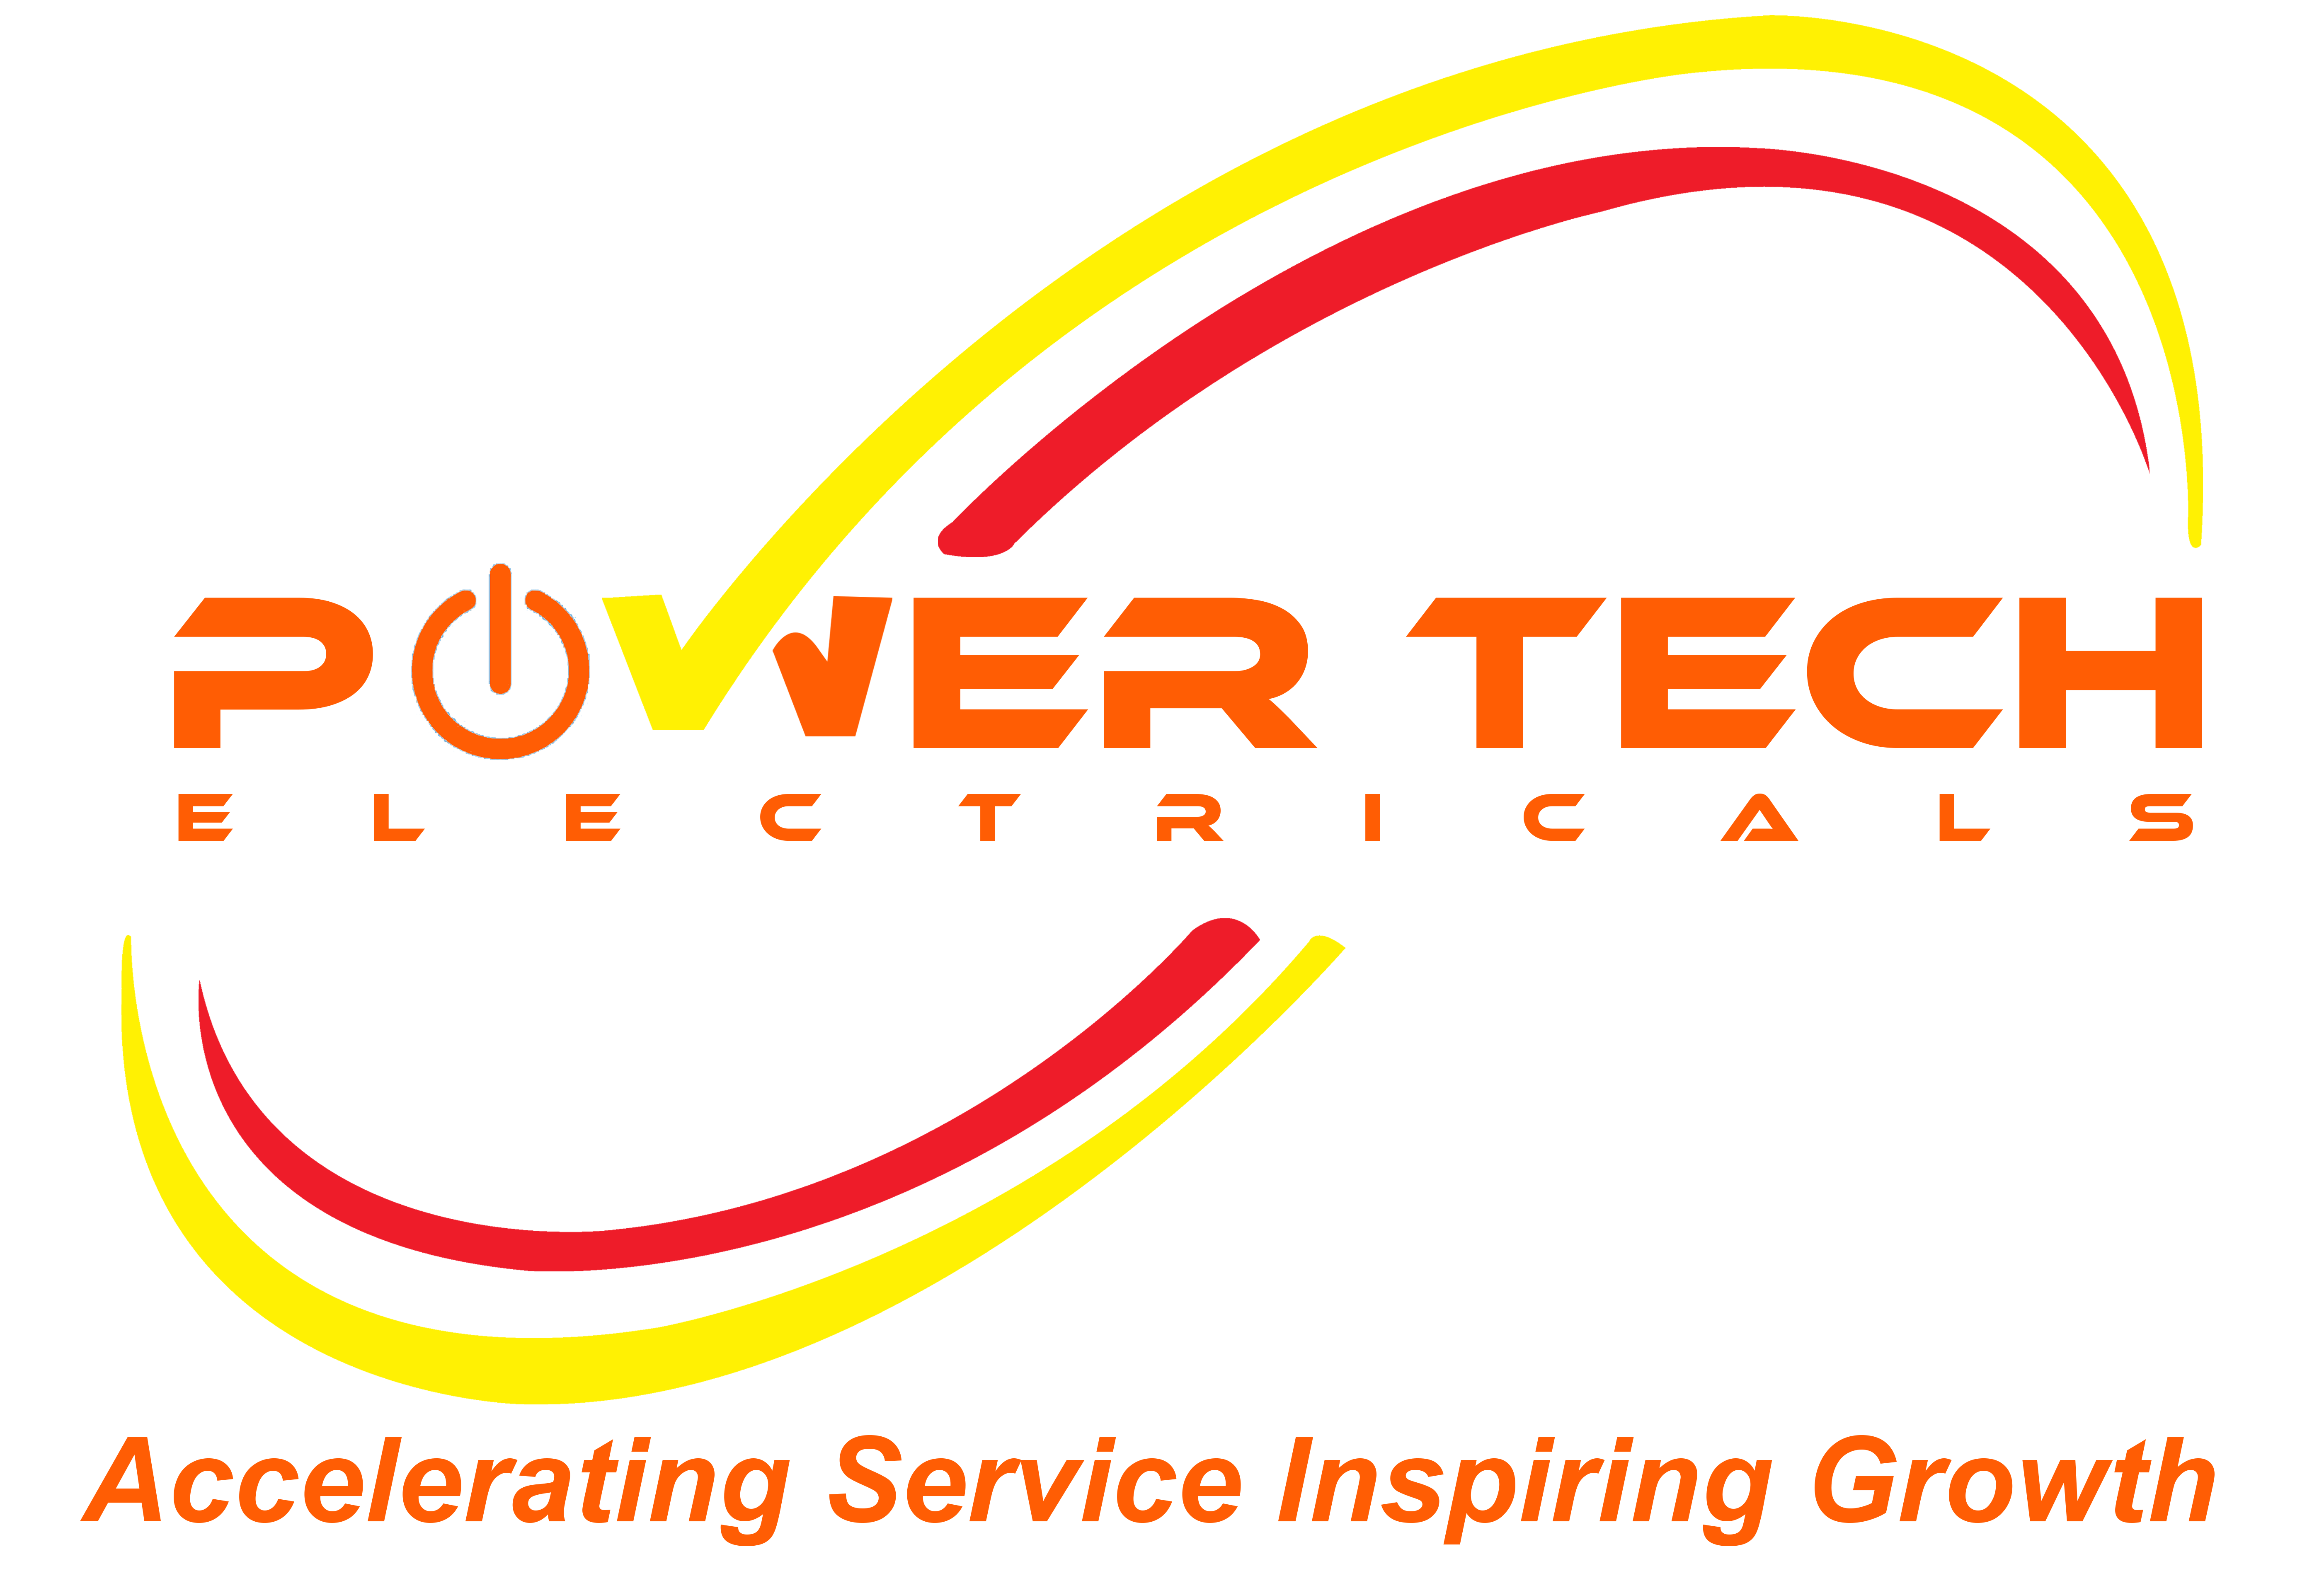 PowerTech Electricals